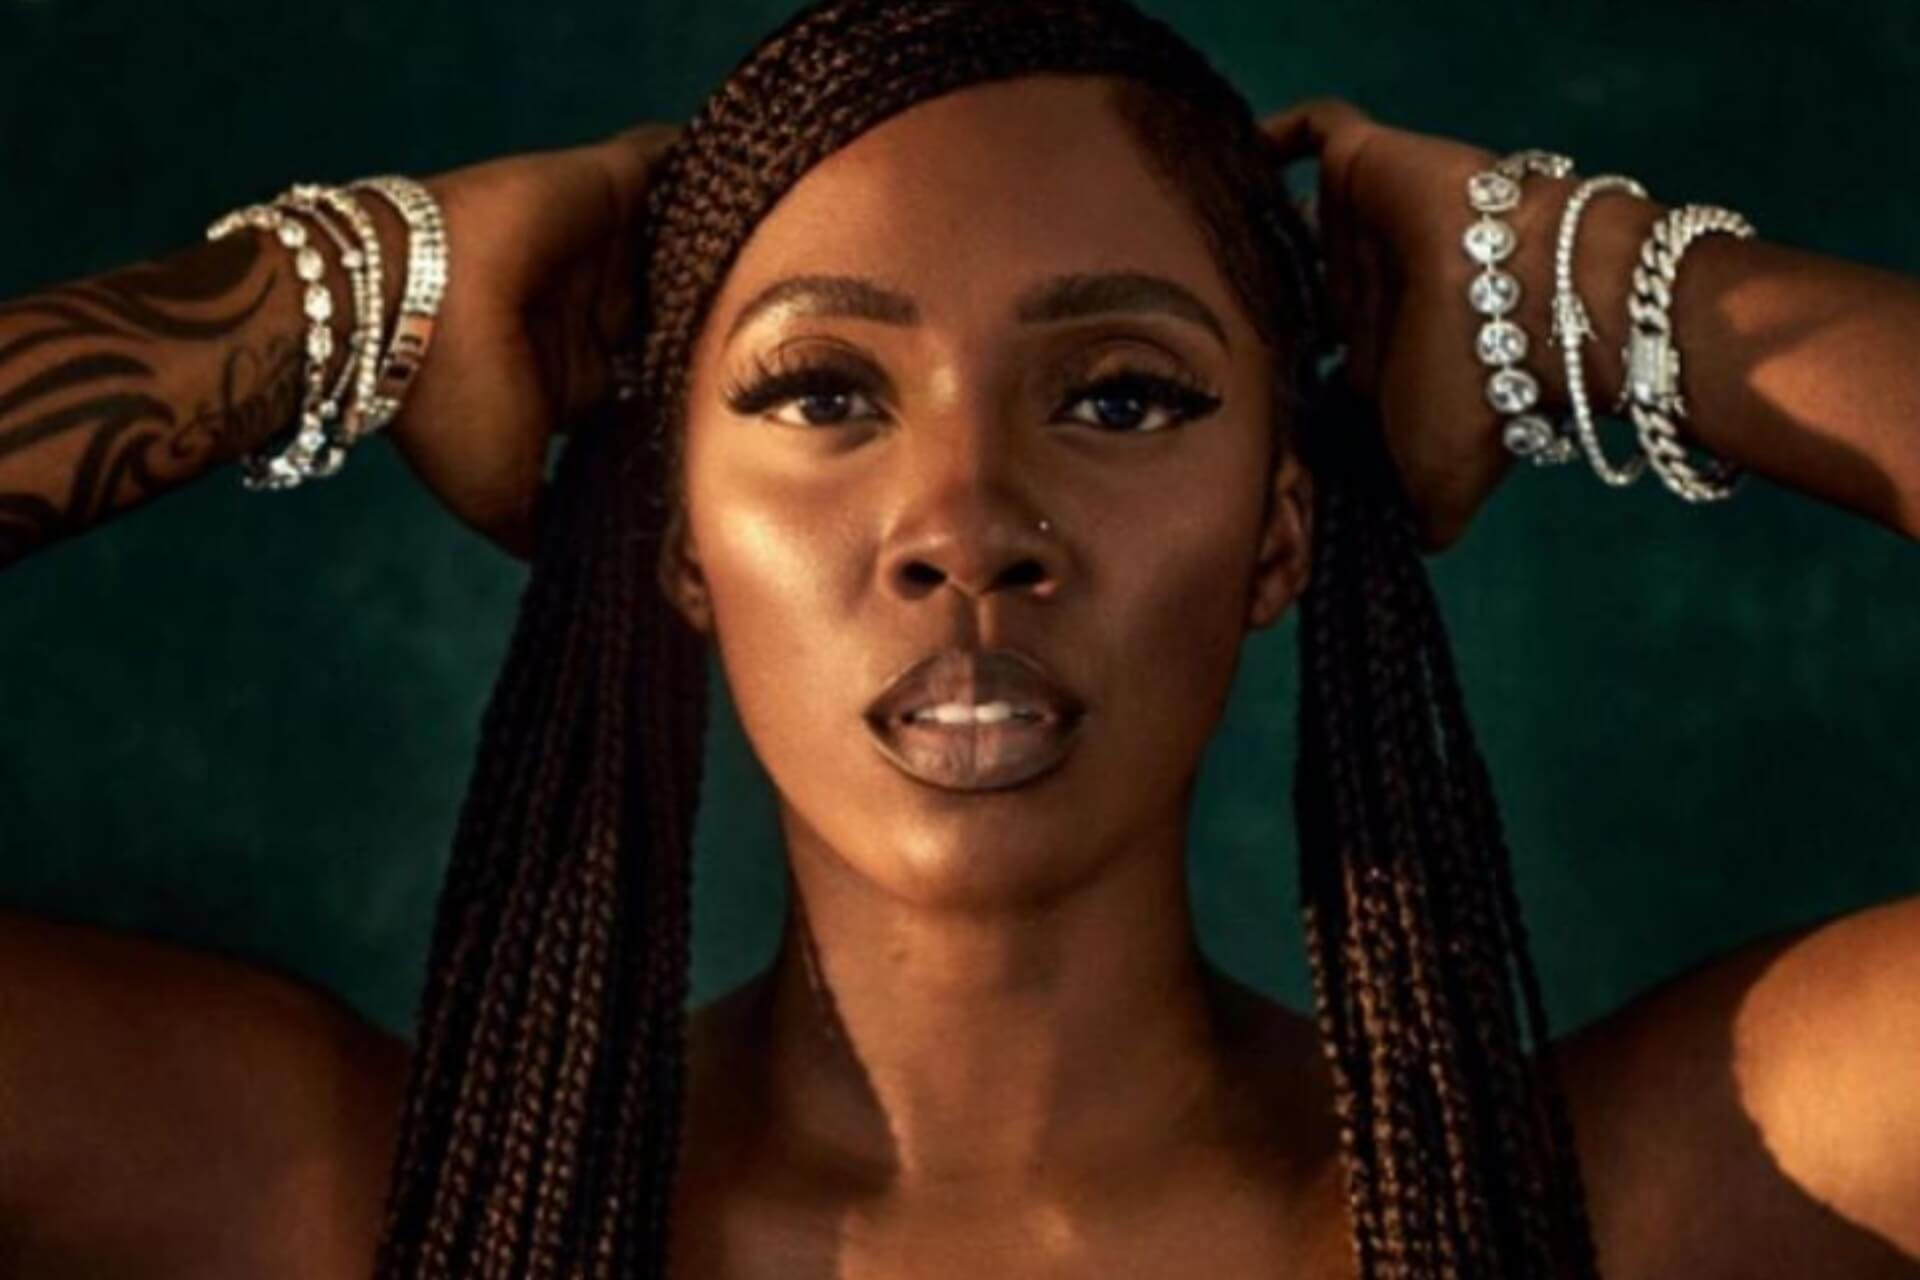 Tiwa Savage speaks up on black women being limited in families